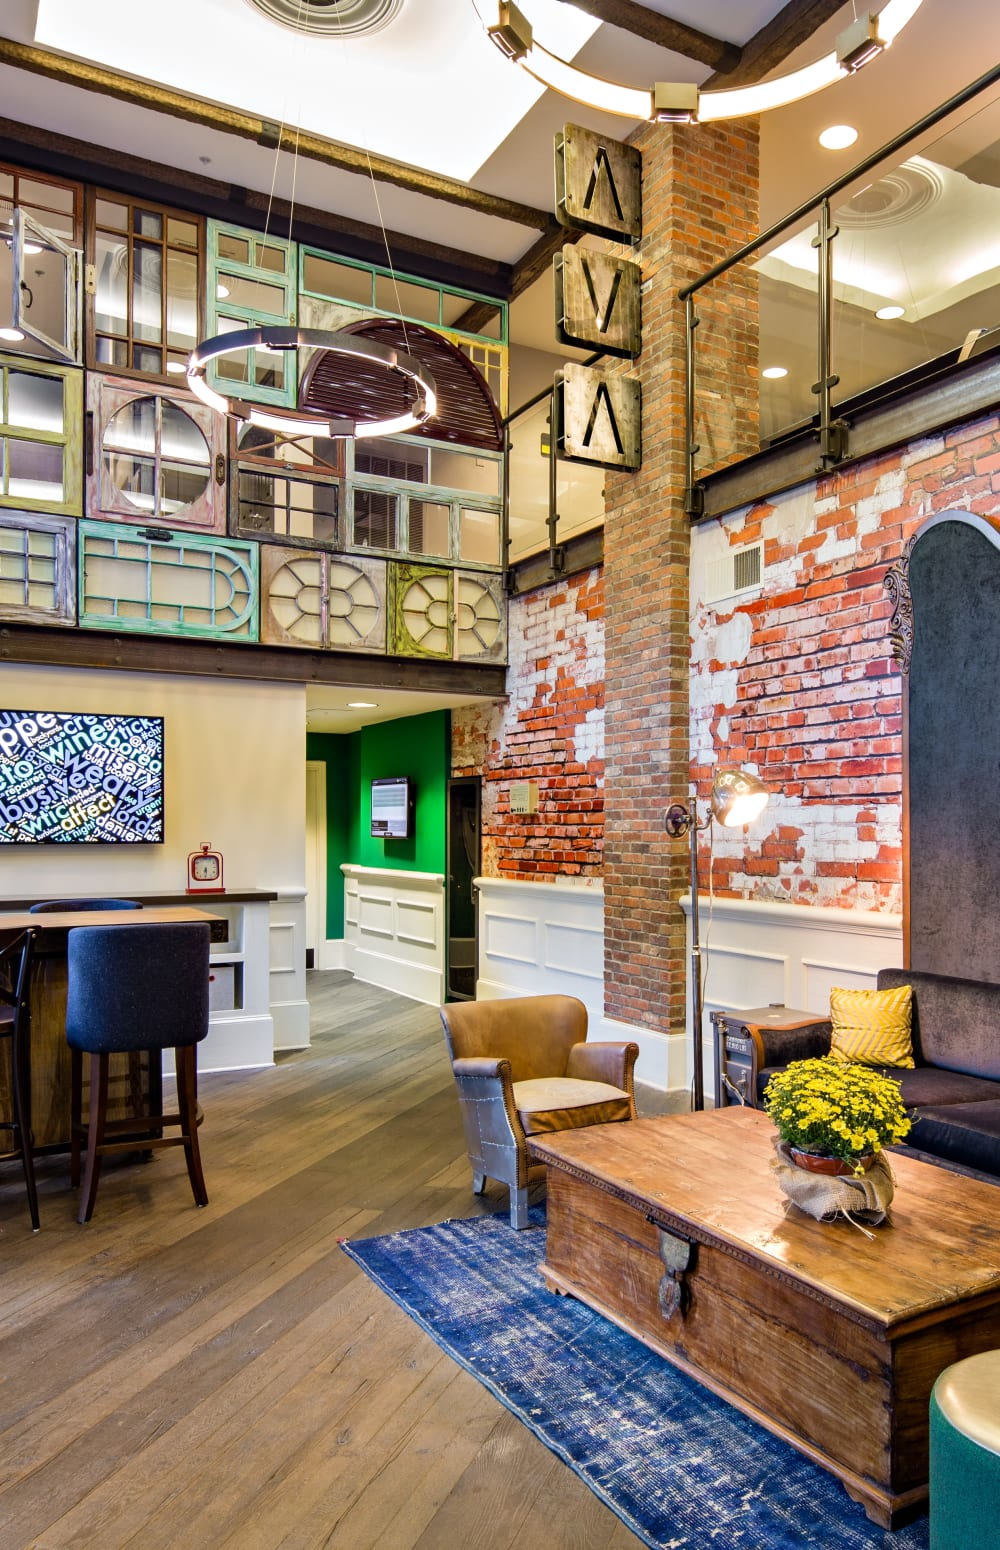 Resident clubhouse interior with exposed brick and art deco design at Sofi at 50 Forest in Stamford, Connecticut